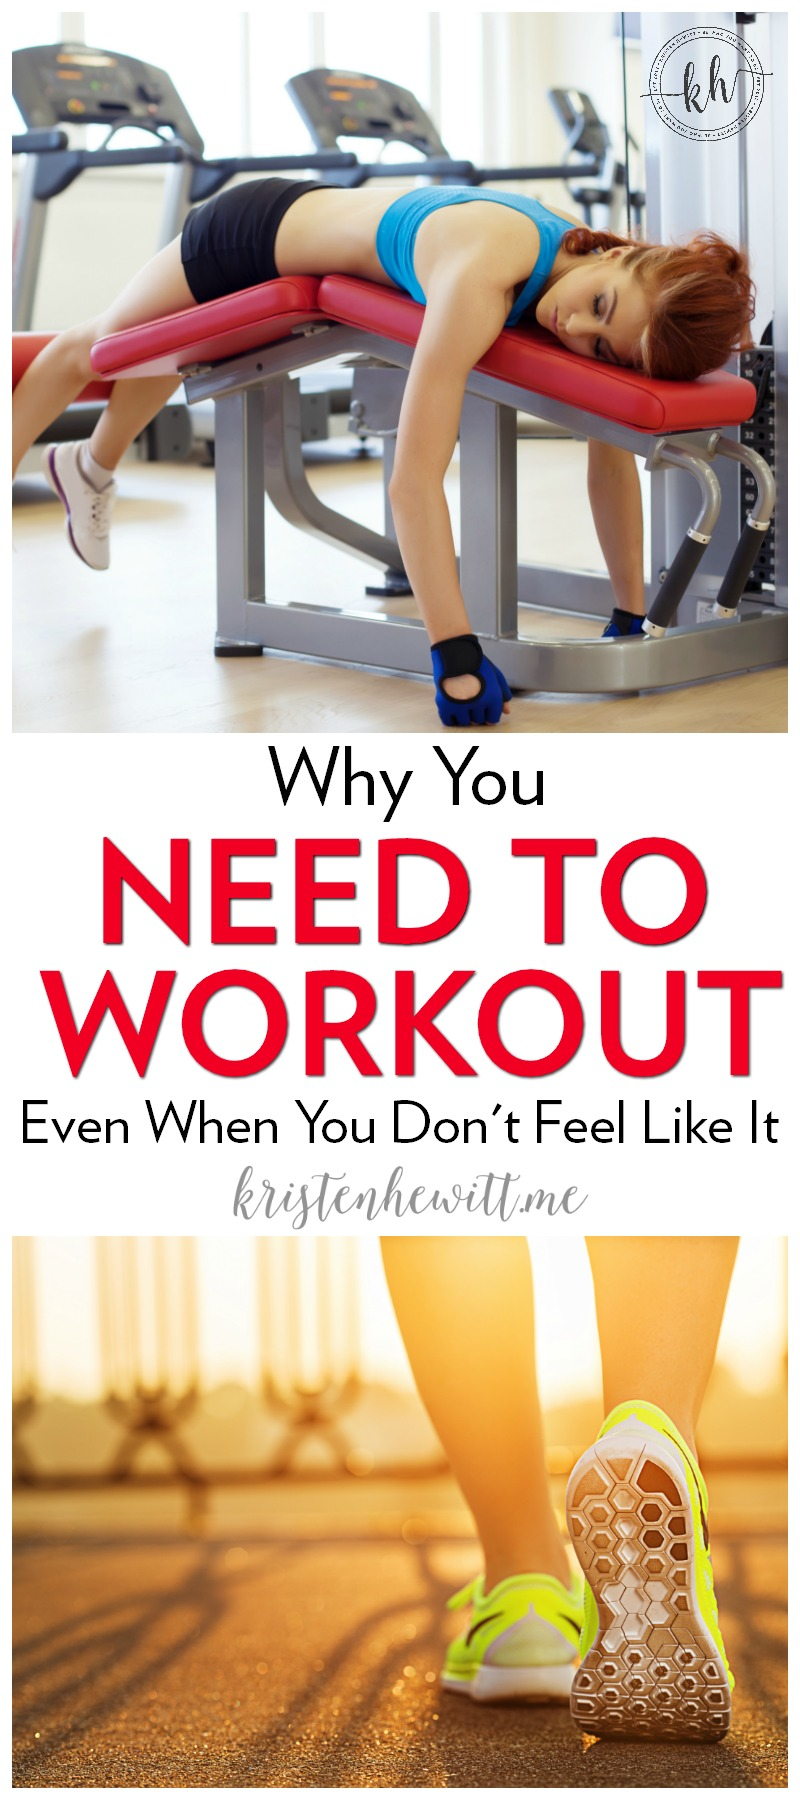 Why I Work Out Even Though I Feel Like Crap Kristen Hewitt